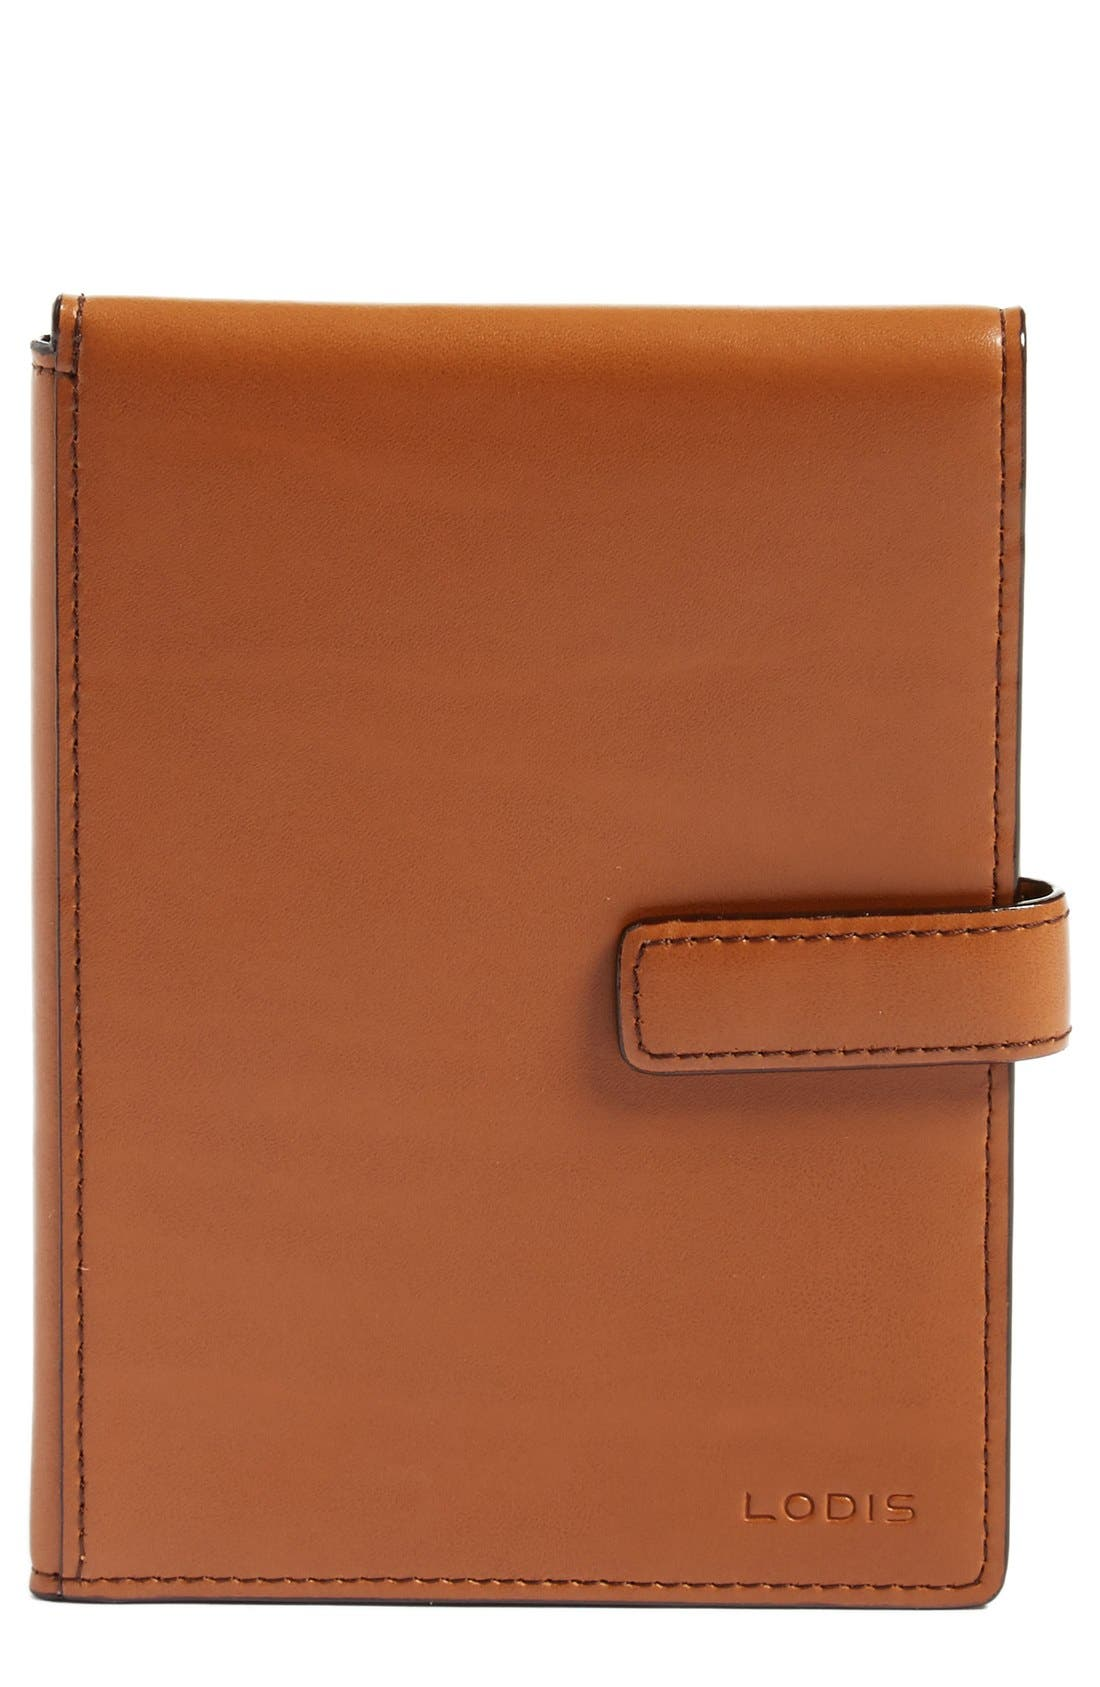 LODIS Los Angeles Audrey RFID Leather Passport Wallet (Nordstrom Exclusive)